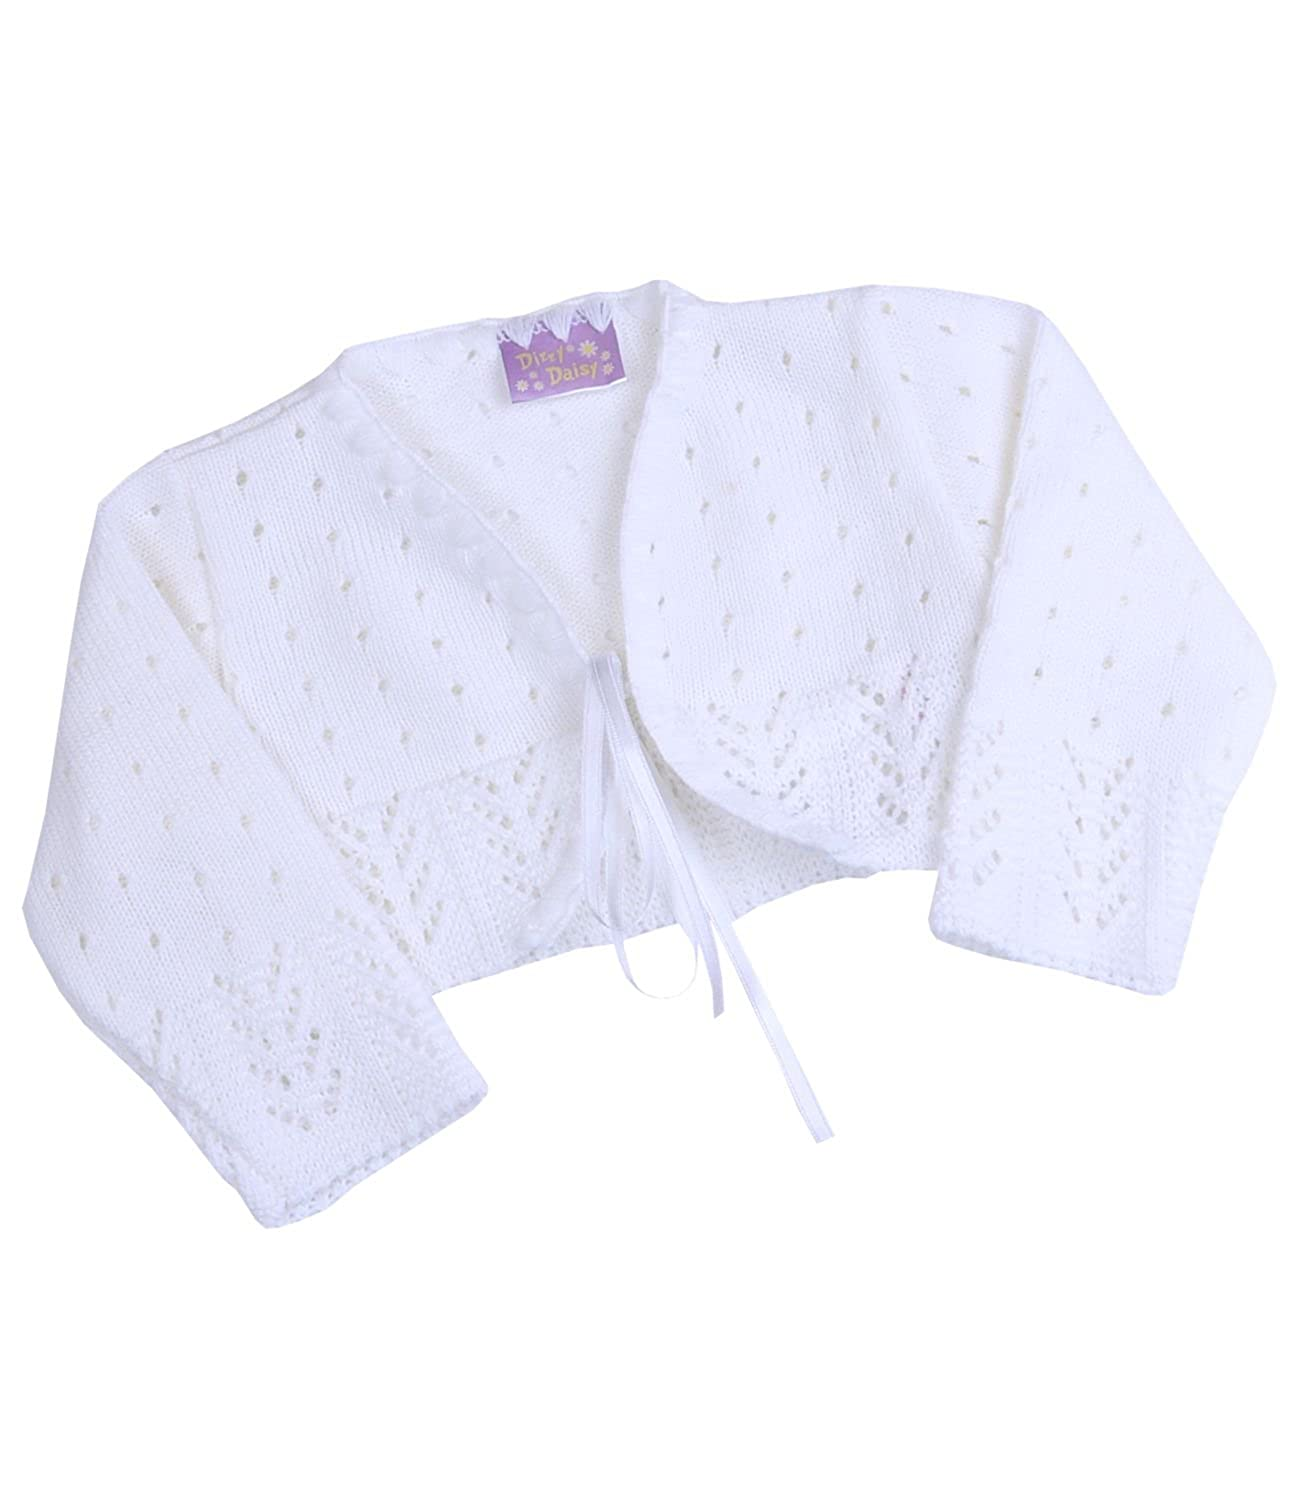 BabyPrem Baby Cardigan Bolero Girls Clothes White Pink Knitted White 18-24 Months BEE021